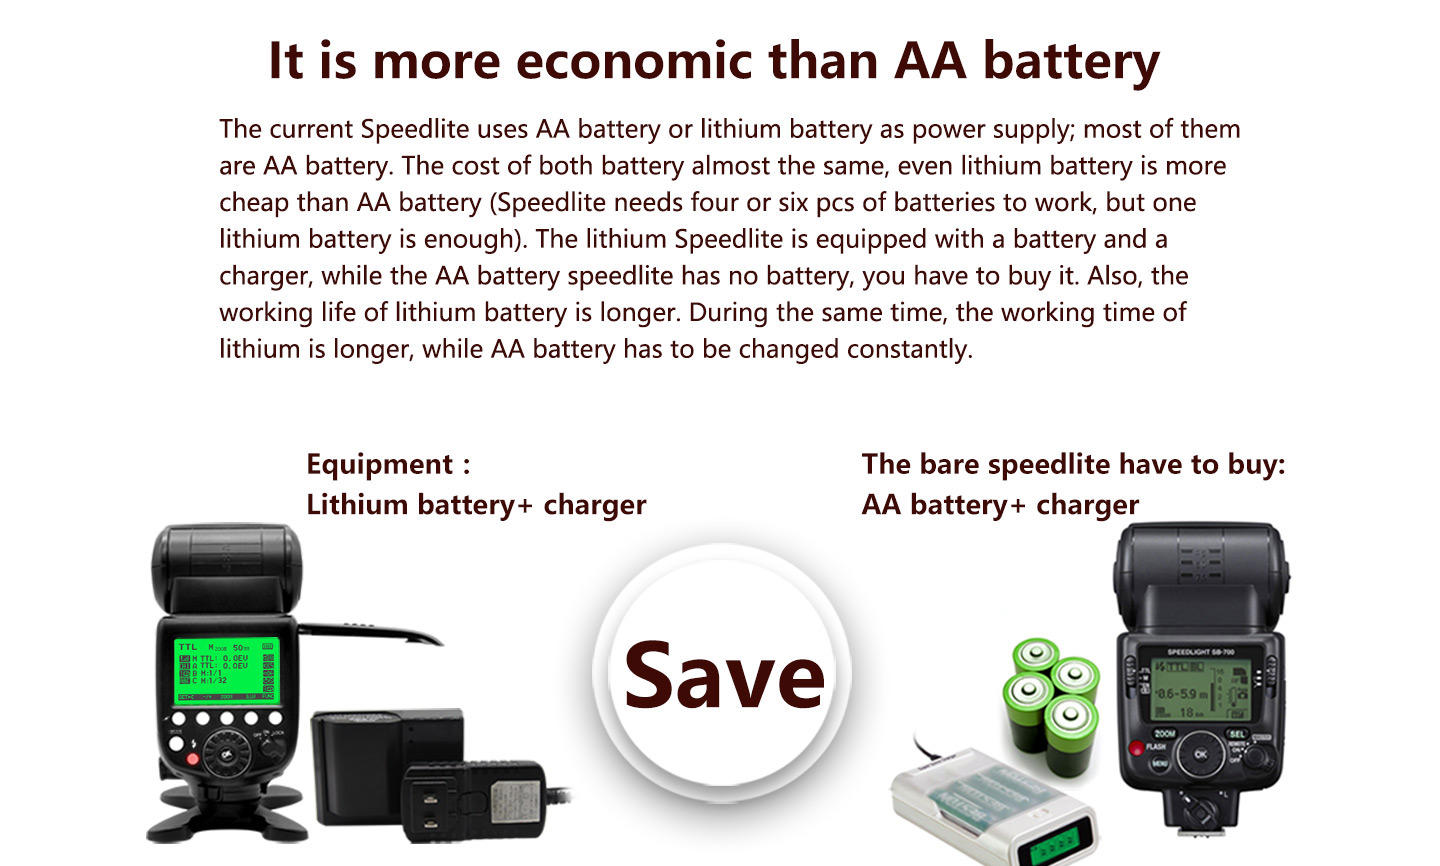 It is more economic than AA battery